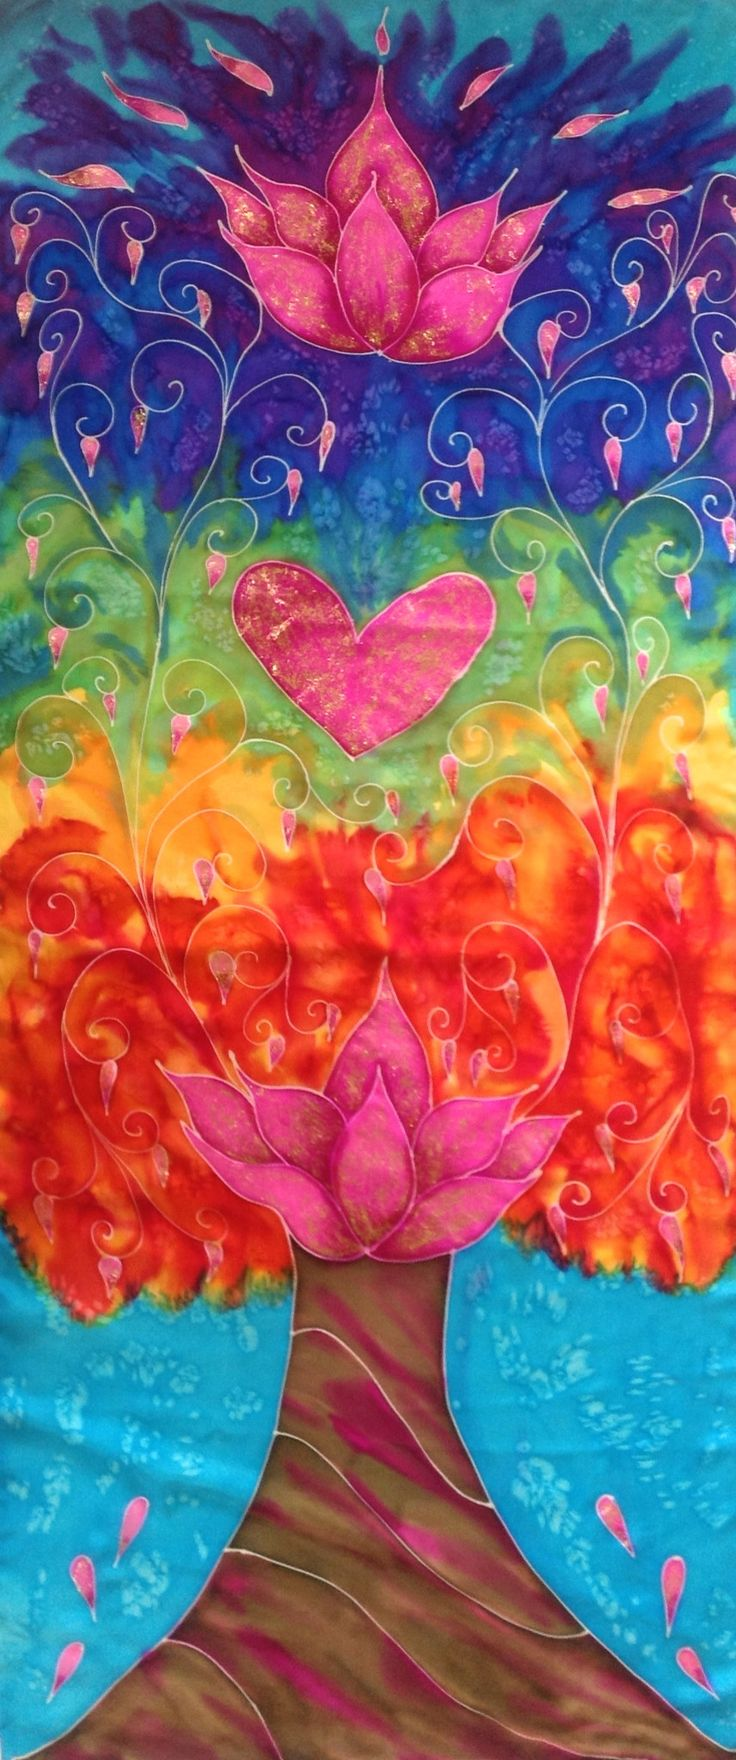 Color art printing anchorage - Find This Pin And More On Art Trees By Colorsbymia